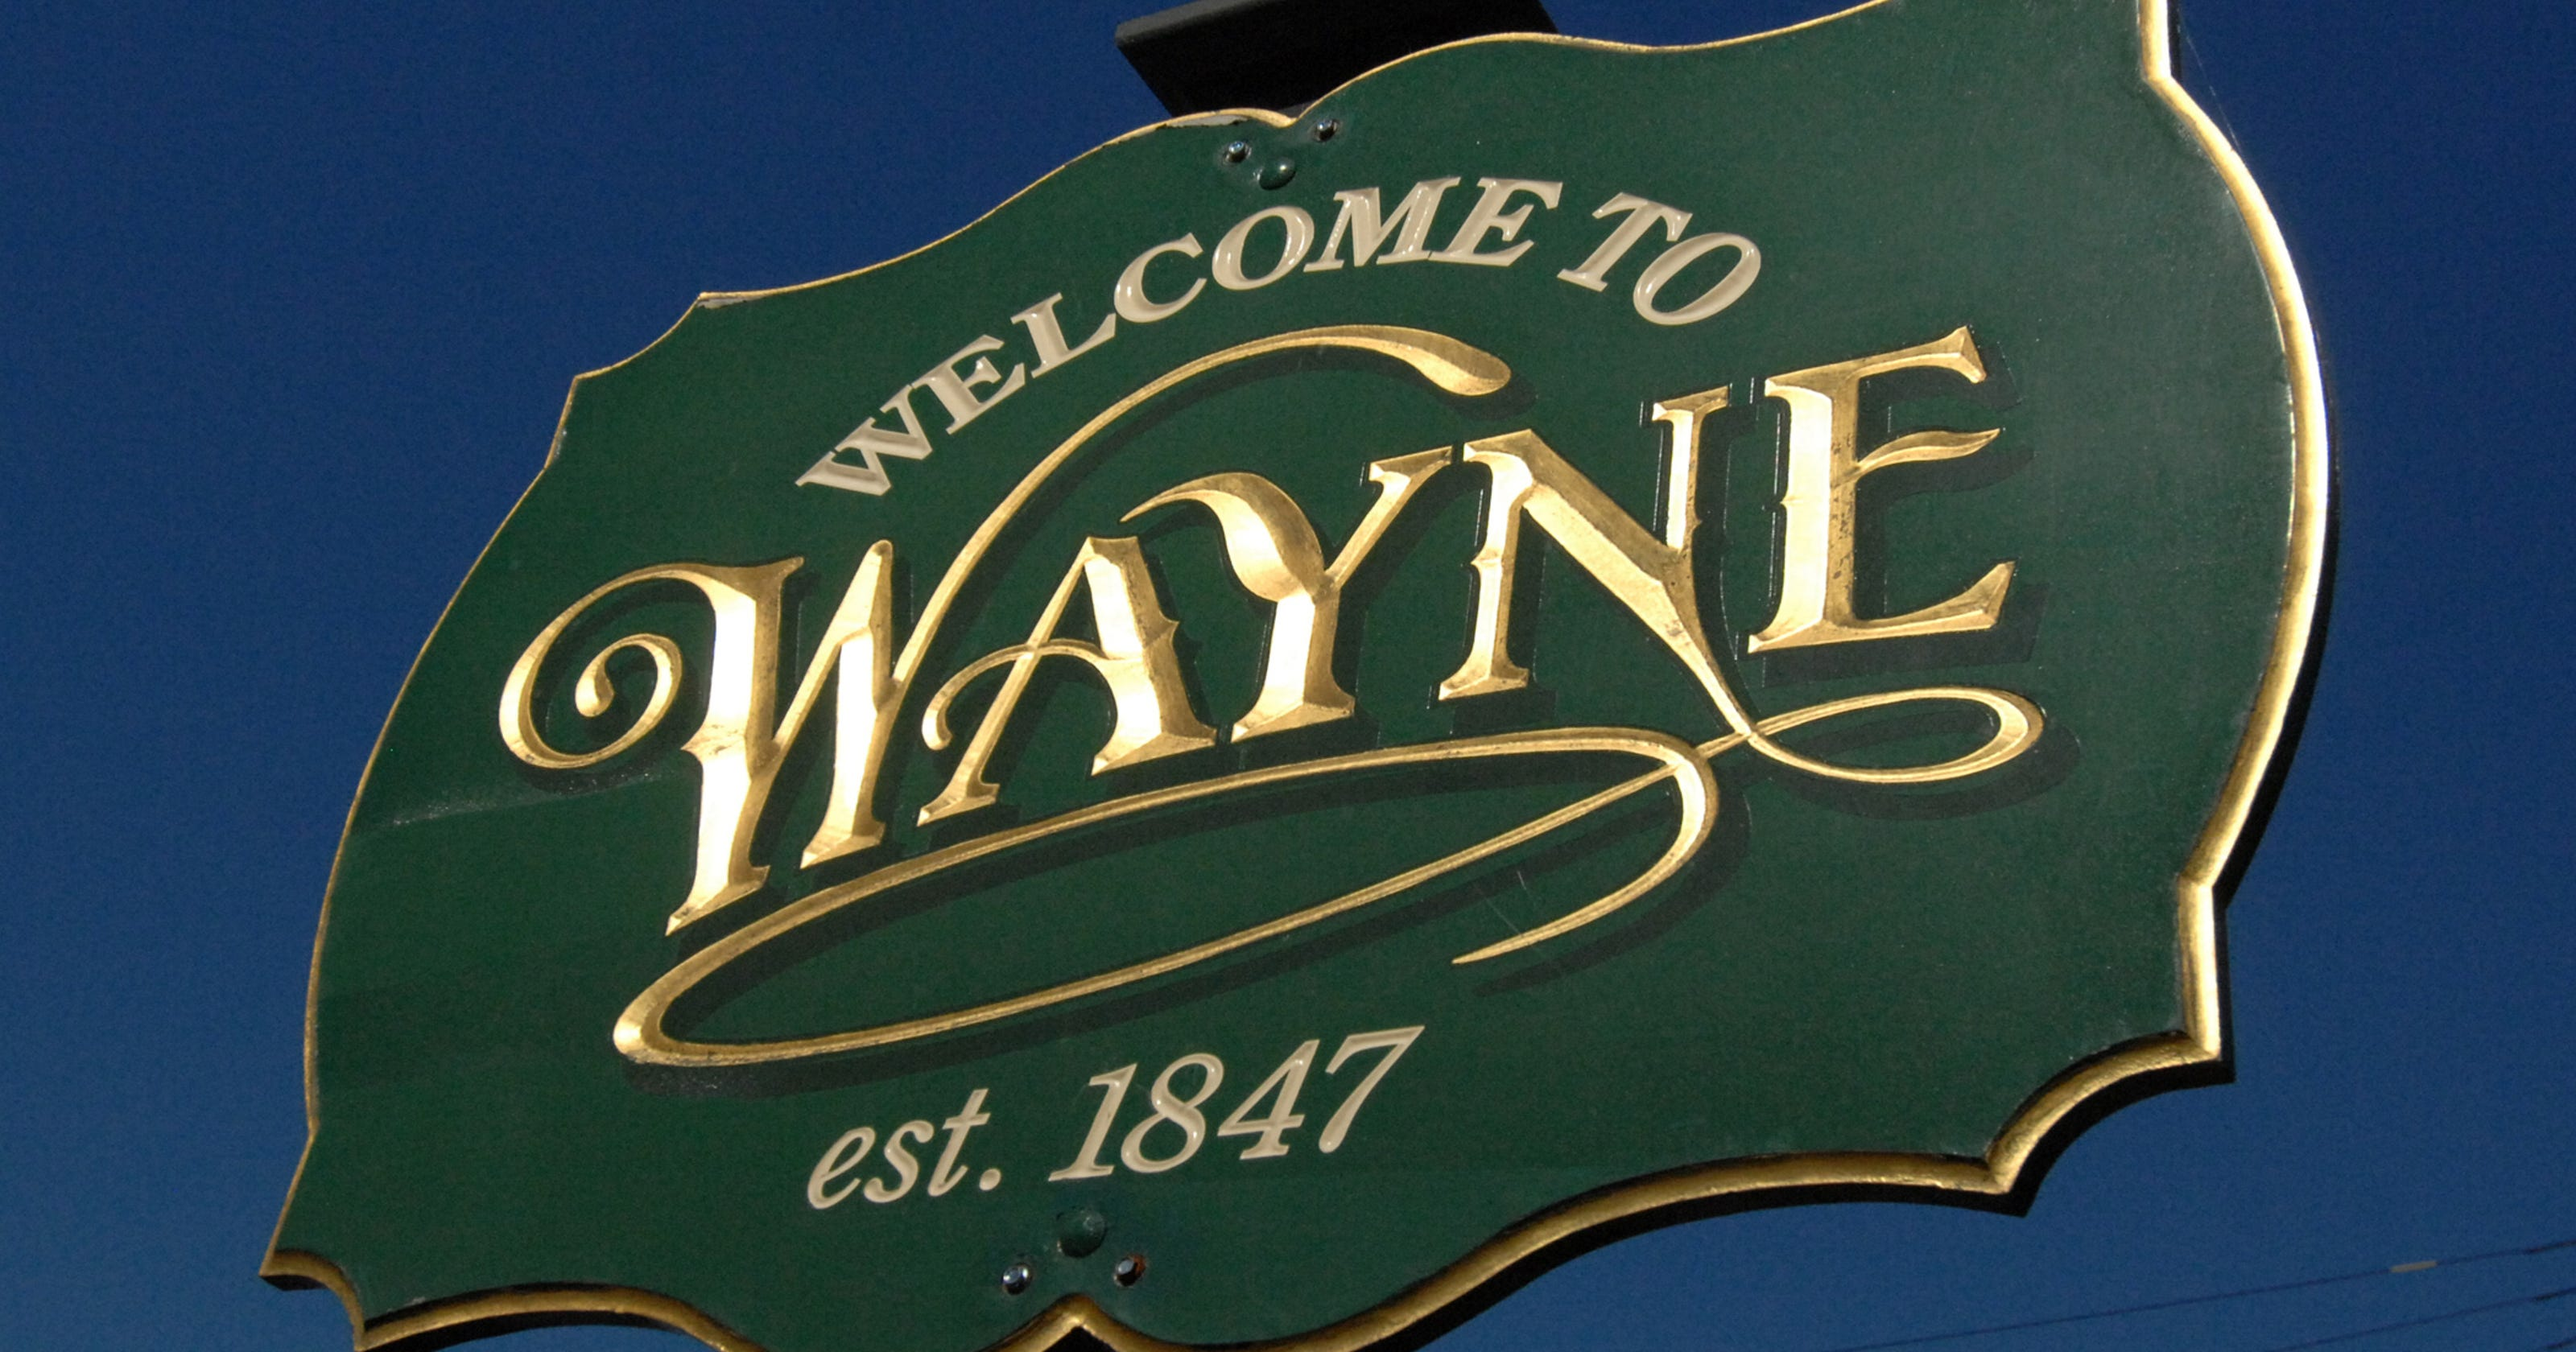 Wayne police chief gets vote of no confidence